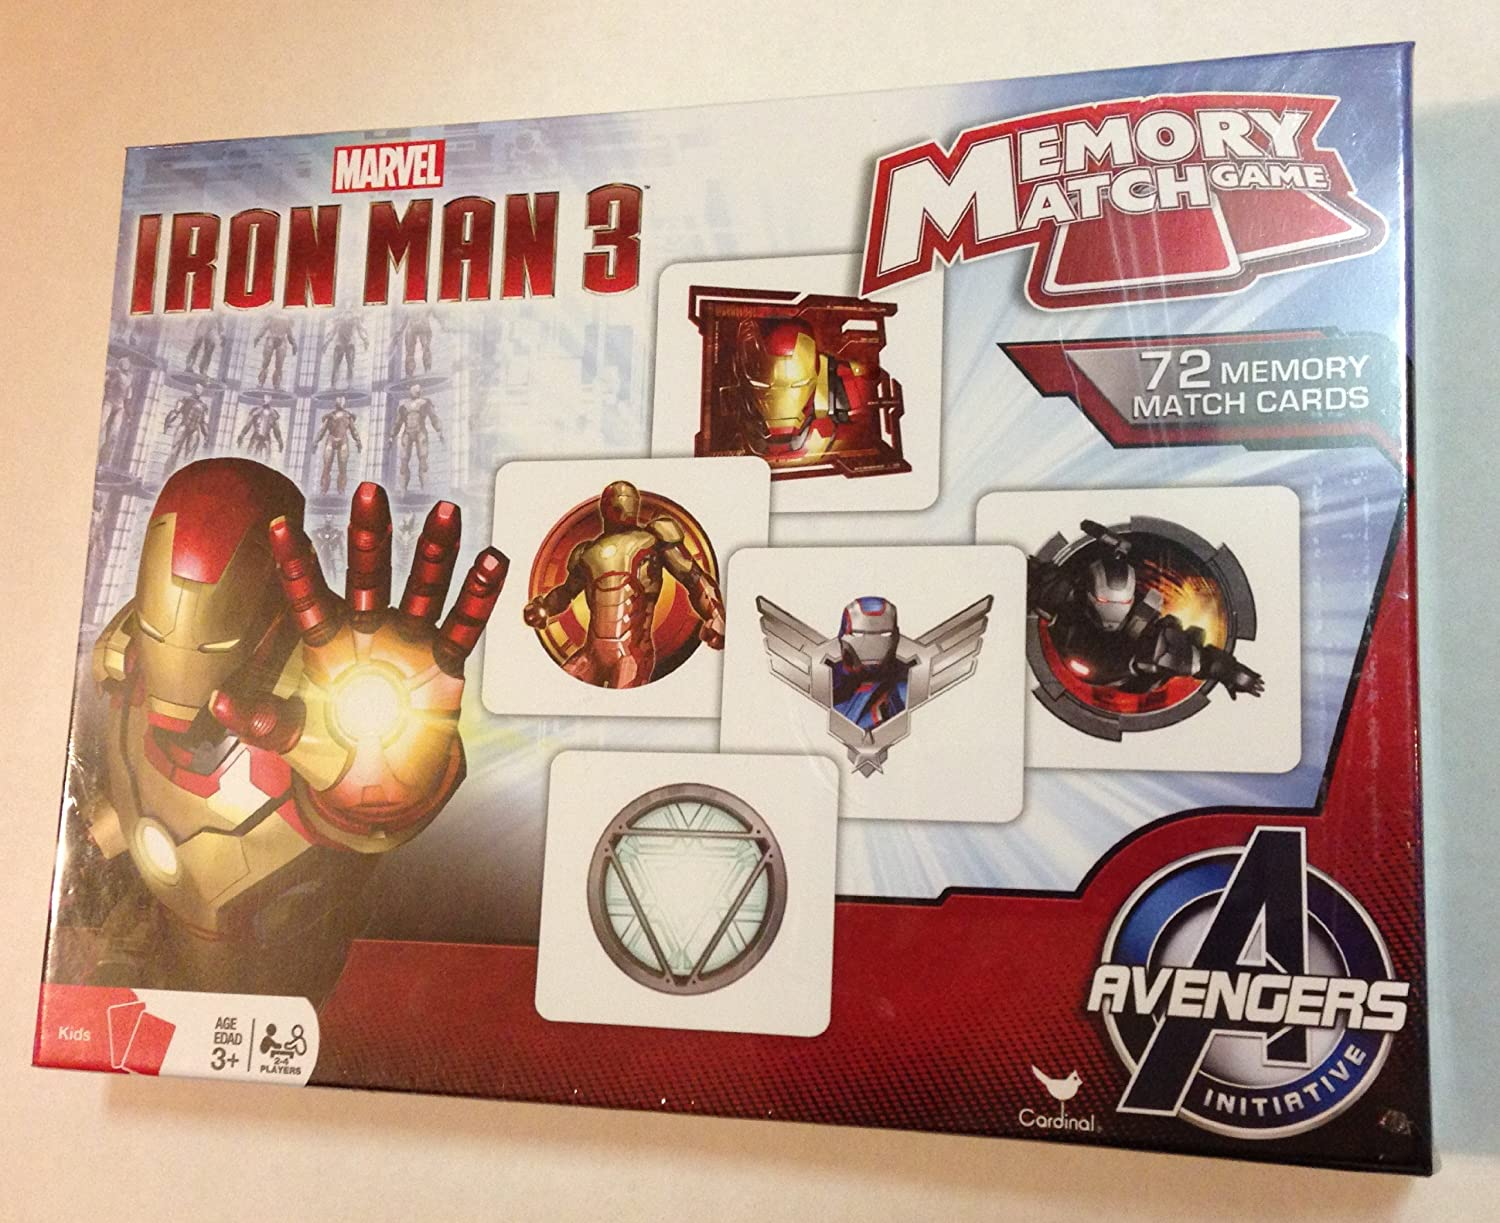 Iron Man 3 Memory Match Game by Cardinal